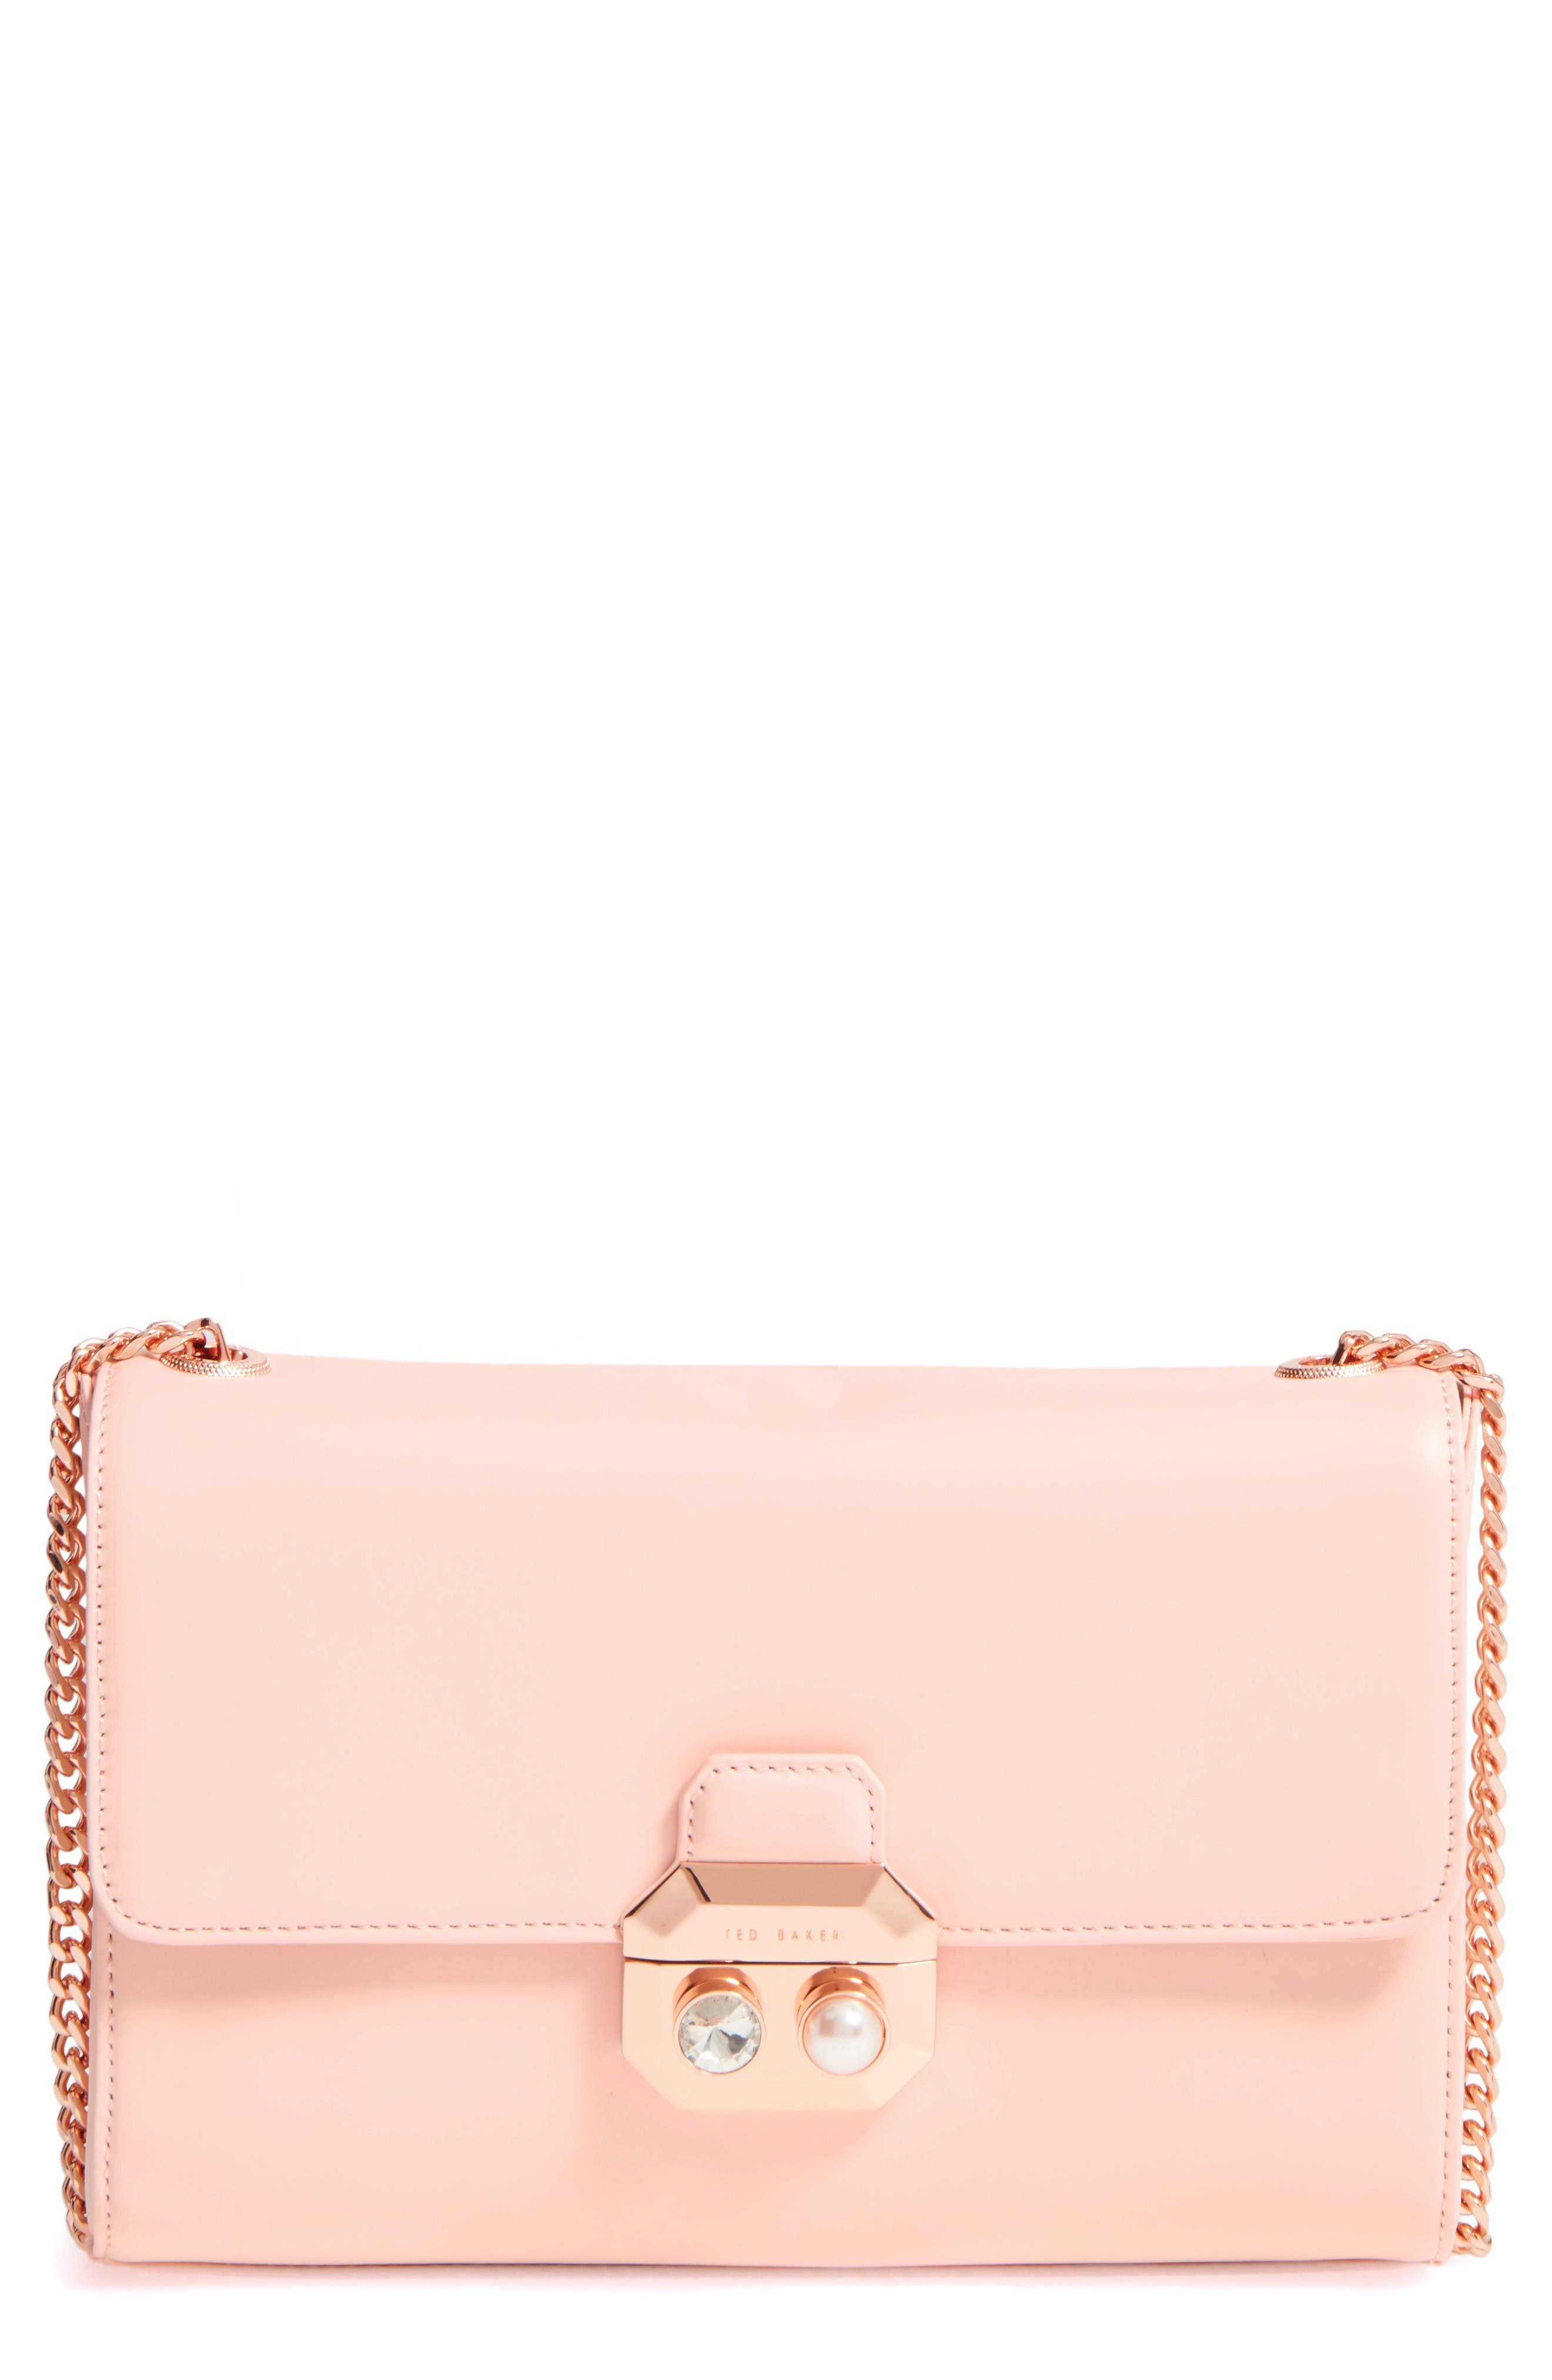 Main Image - Ted Baker London Leather Crossbody Bag